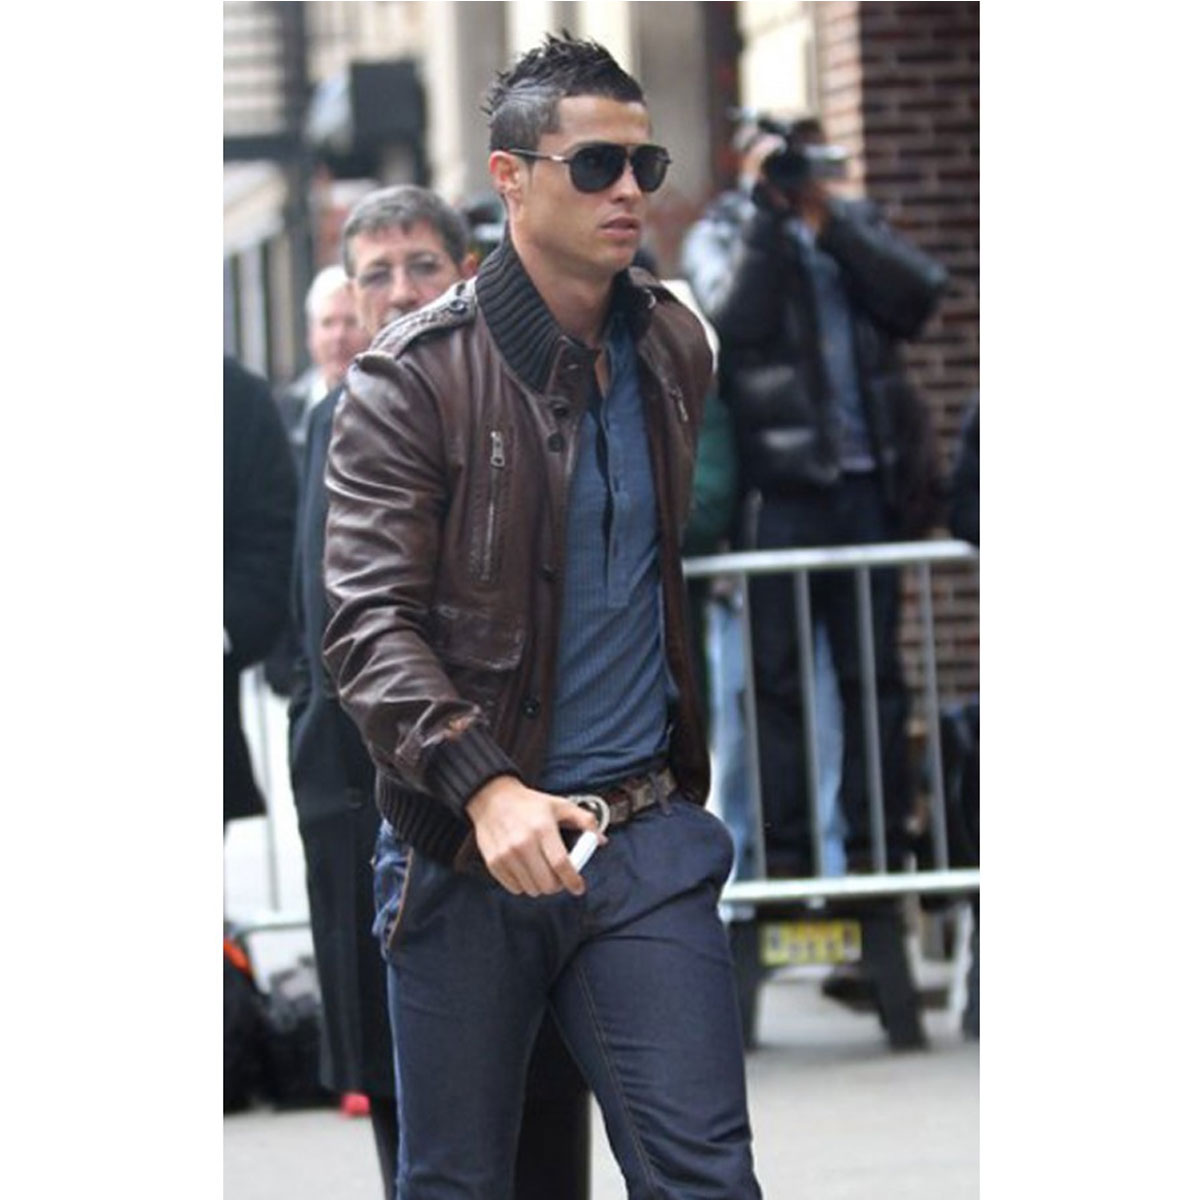 2d1610a20 CRISTIANO RONALDO BROWN BOMBER LEATHER JACKET - Celebs Outfits